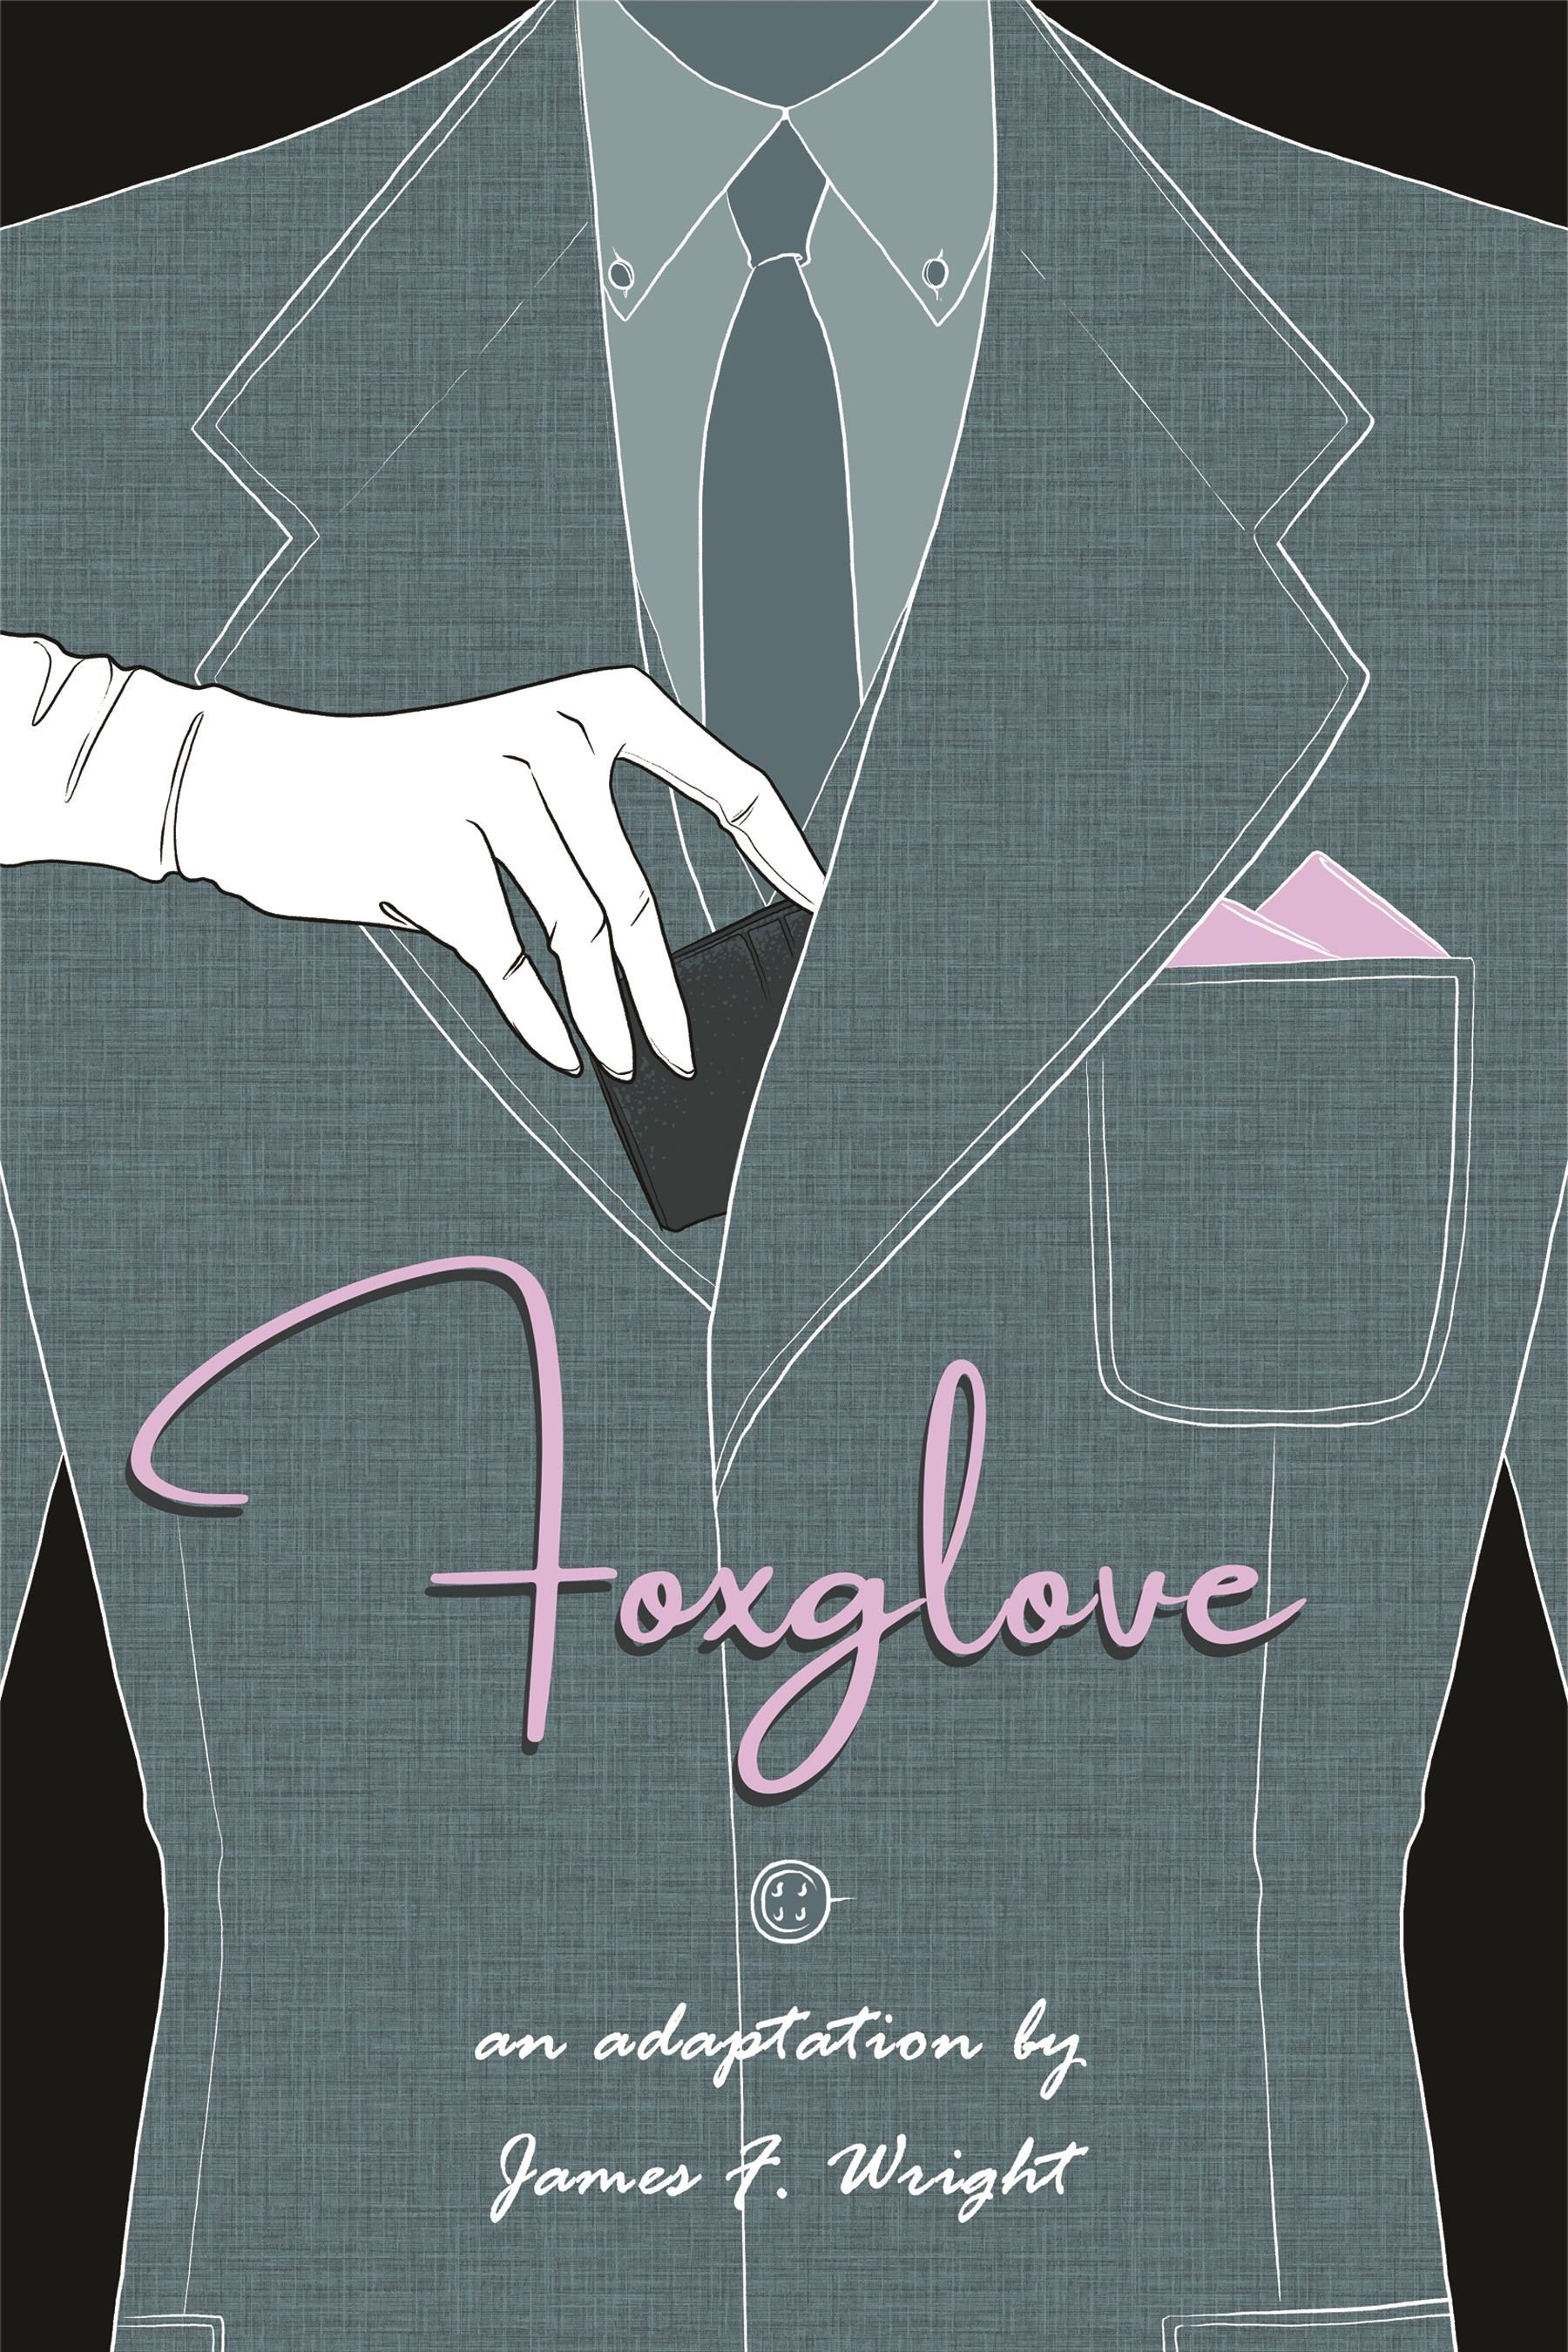 FOXGLOVE    November 2018    A zine adaptation of an out-of-print memoir I found at a Goodwill in 2017 about a mid-20th-century seamstress who moonlighted as a pickpocket, stealing from the very suits she designed in her day job.    Concept: James F. Wright    Cover Art: Josh Eckert